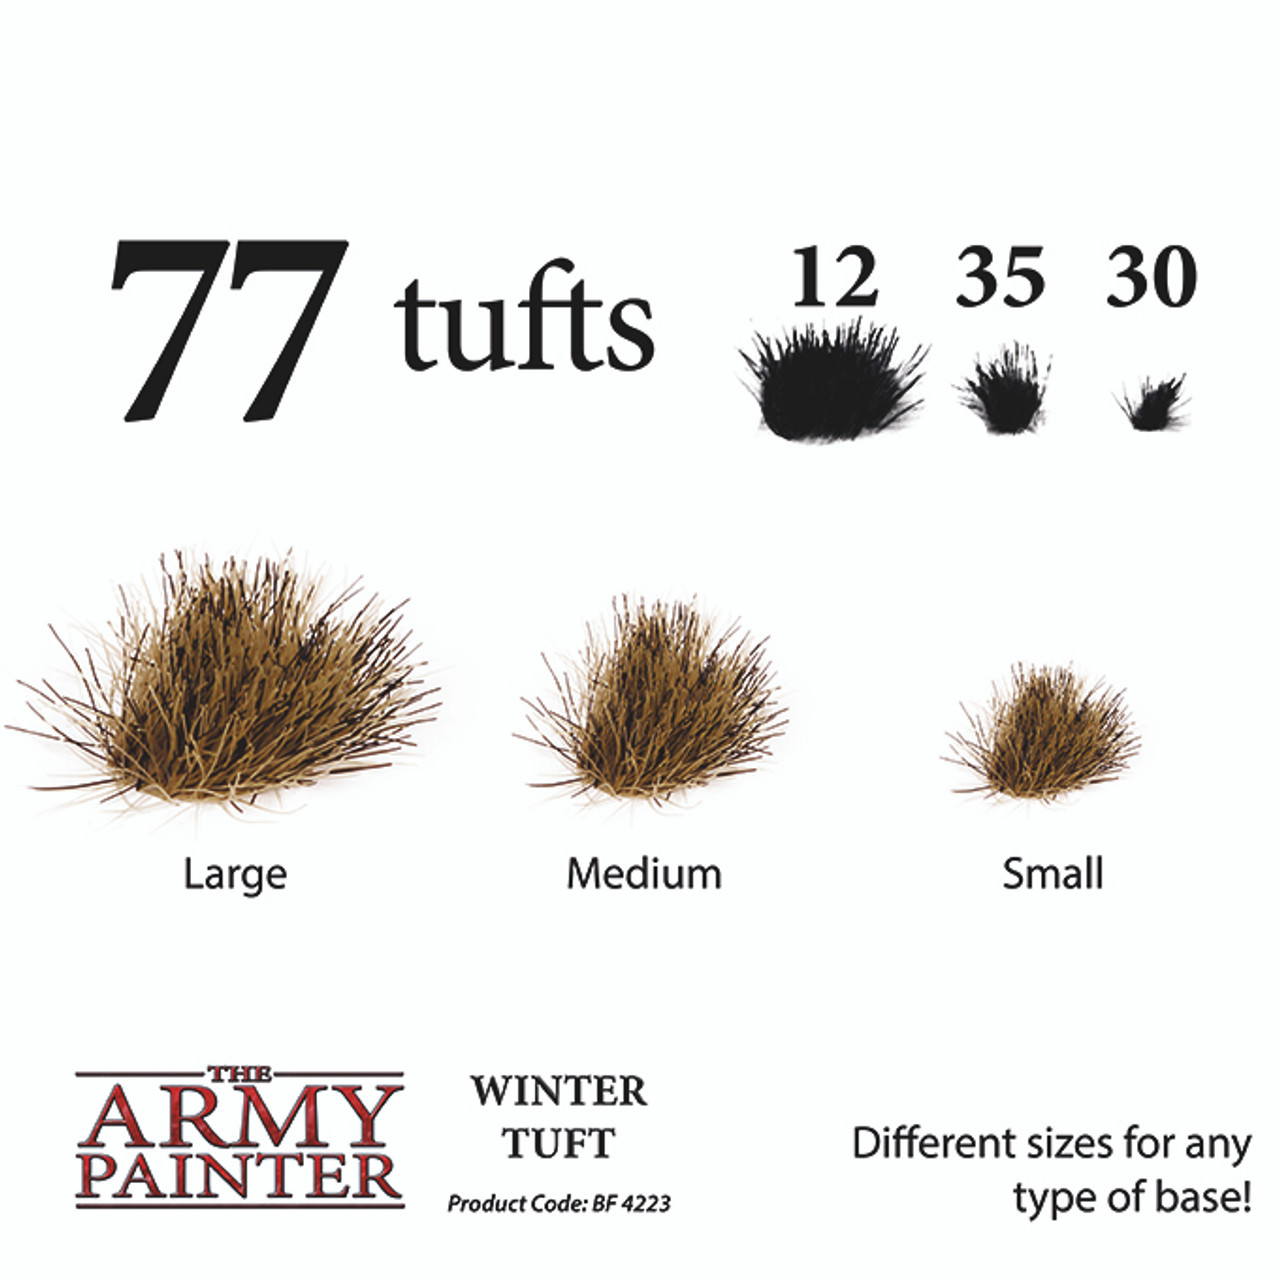 Army Painter Battlefields - Winter Tuft